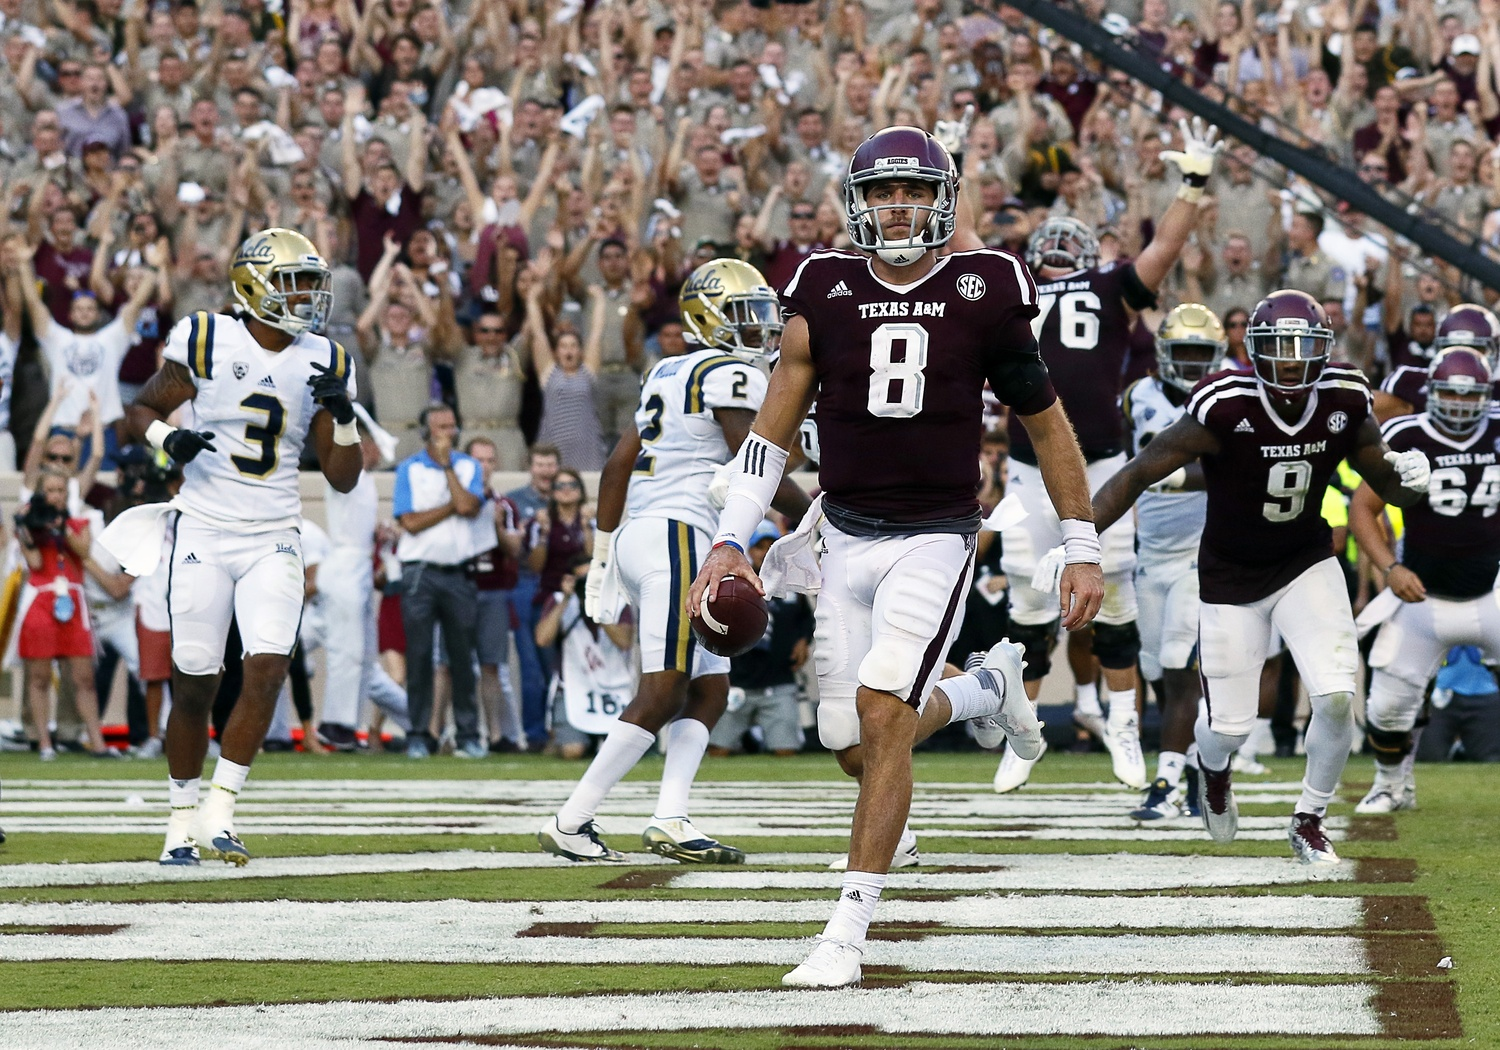 Sep 3, 2016; College Station, TX, USA; Texas A&M Aggies quarterback Trevor Knight (8) goes in for the one-yard touchdown run in overtime against the UCLA Bruins. Texas A&M won 31-24. Mandatory Credit: Ray Carlin-USA TODAY Sports